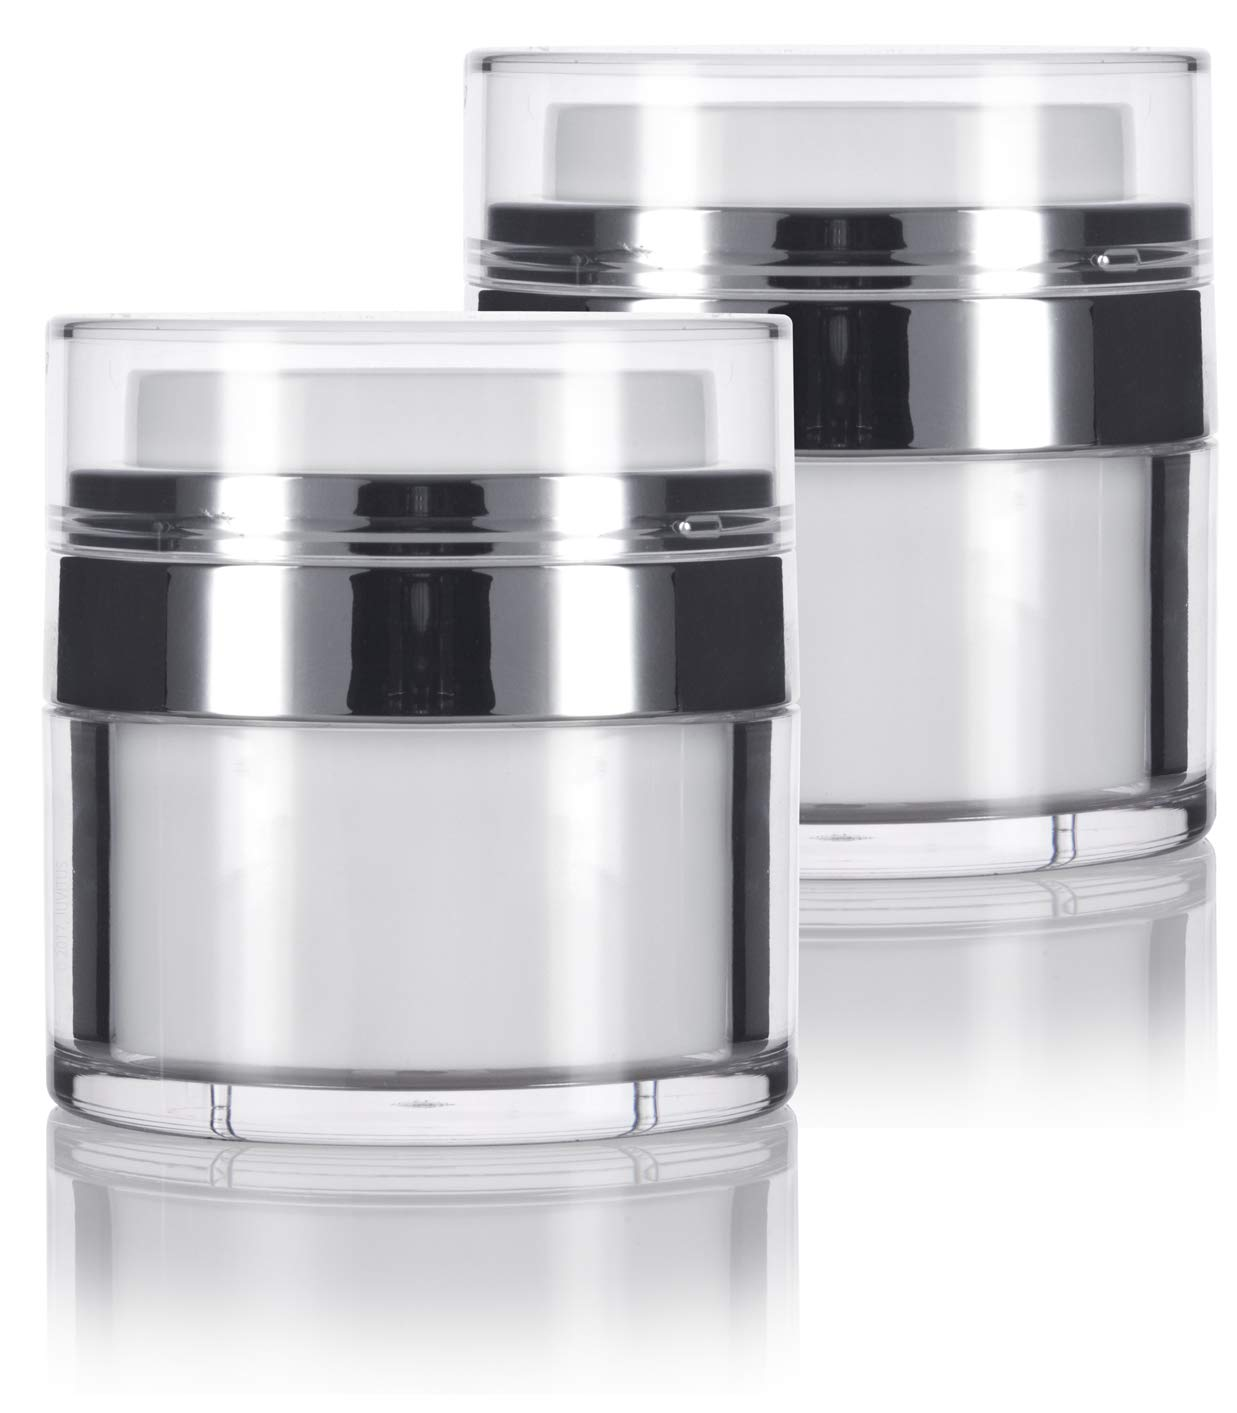 0.50 oz / 15 ml White Airless Refillable Jar (2 PACK) keeps out air changing oxidation from your skin care products - durable, leak proof, and shatterproof for home or travel